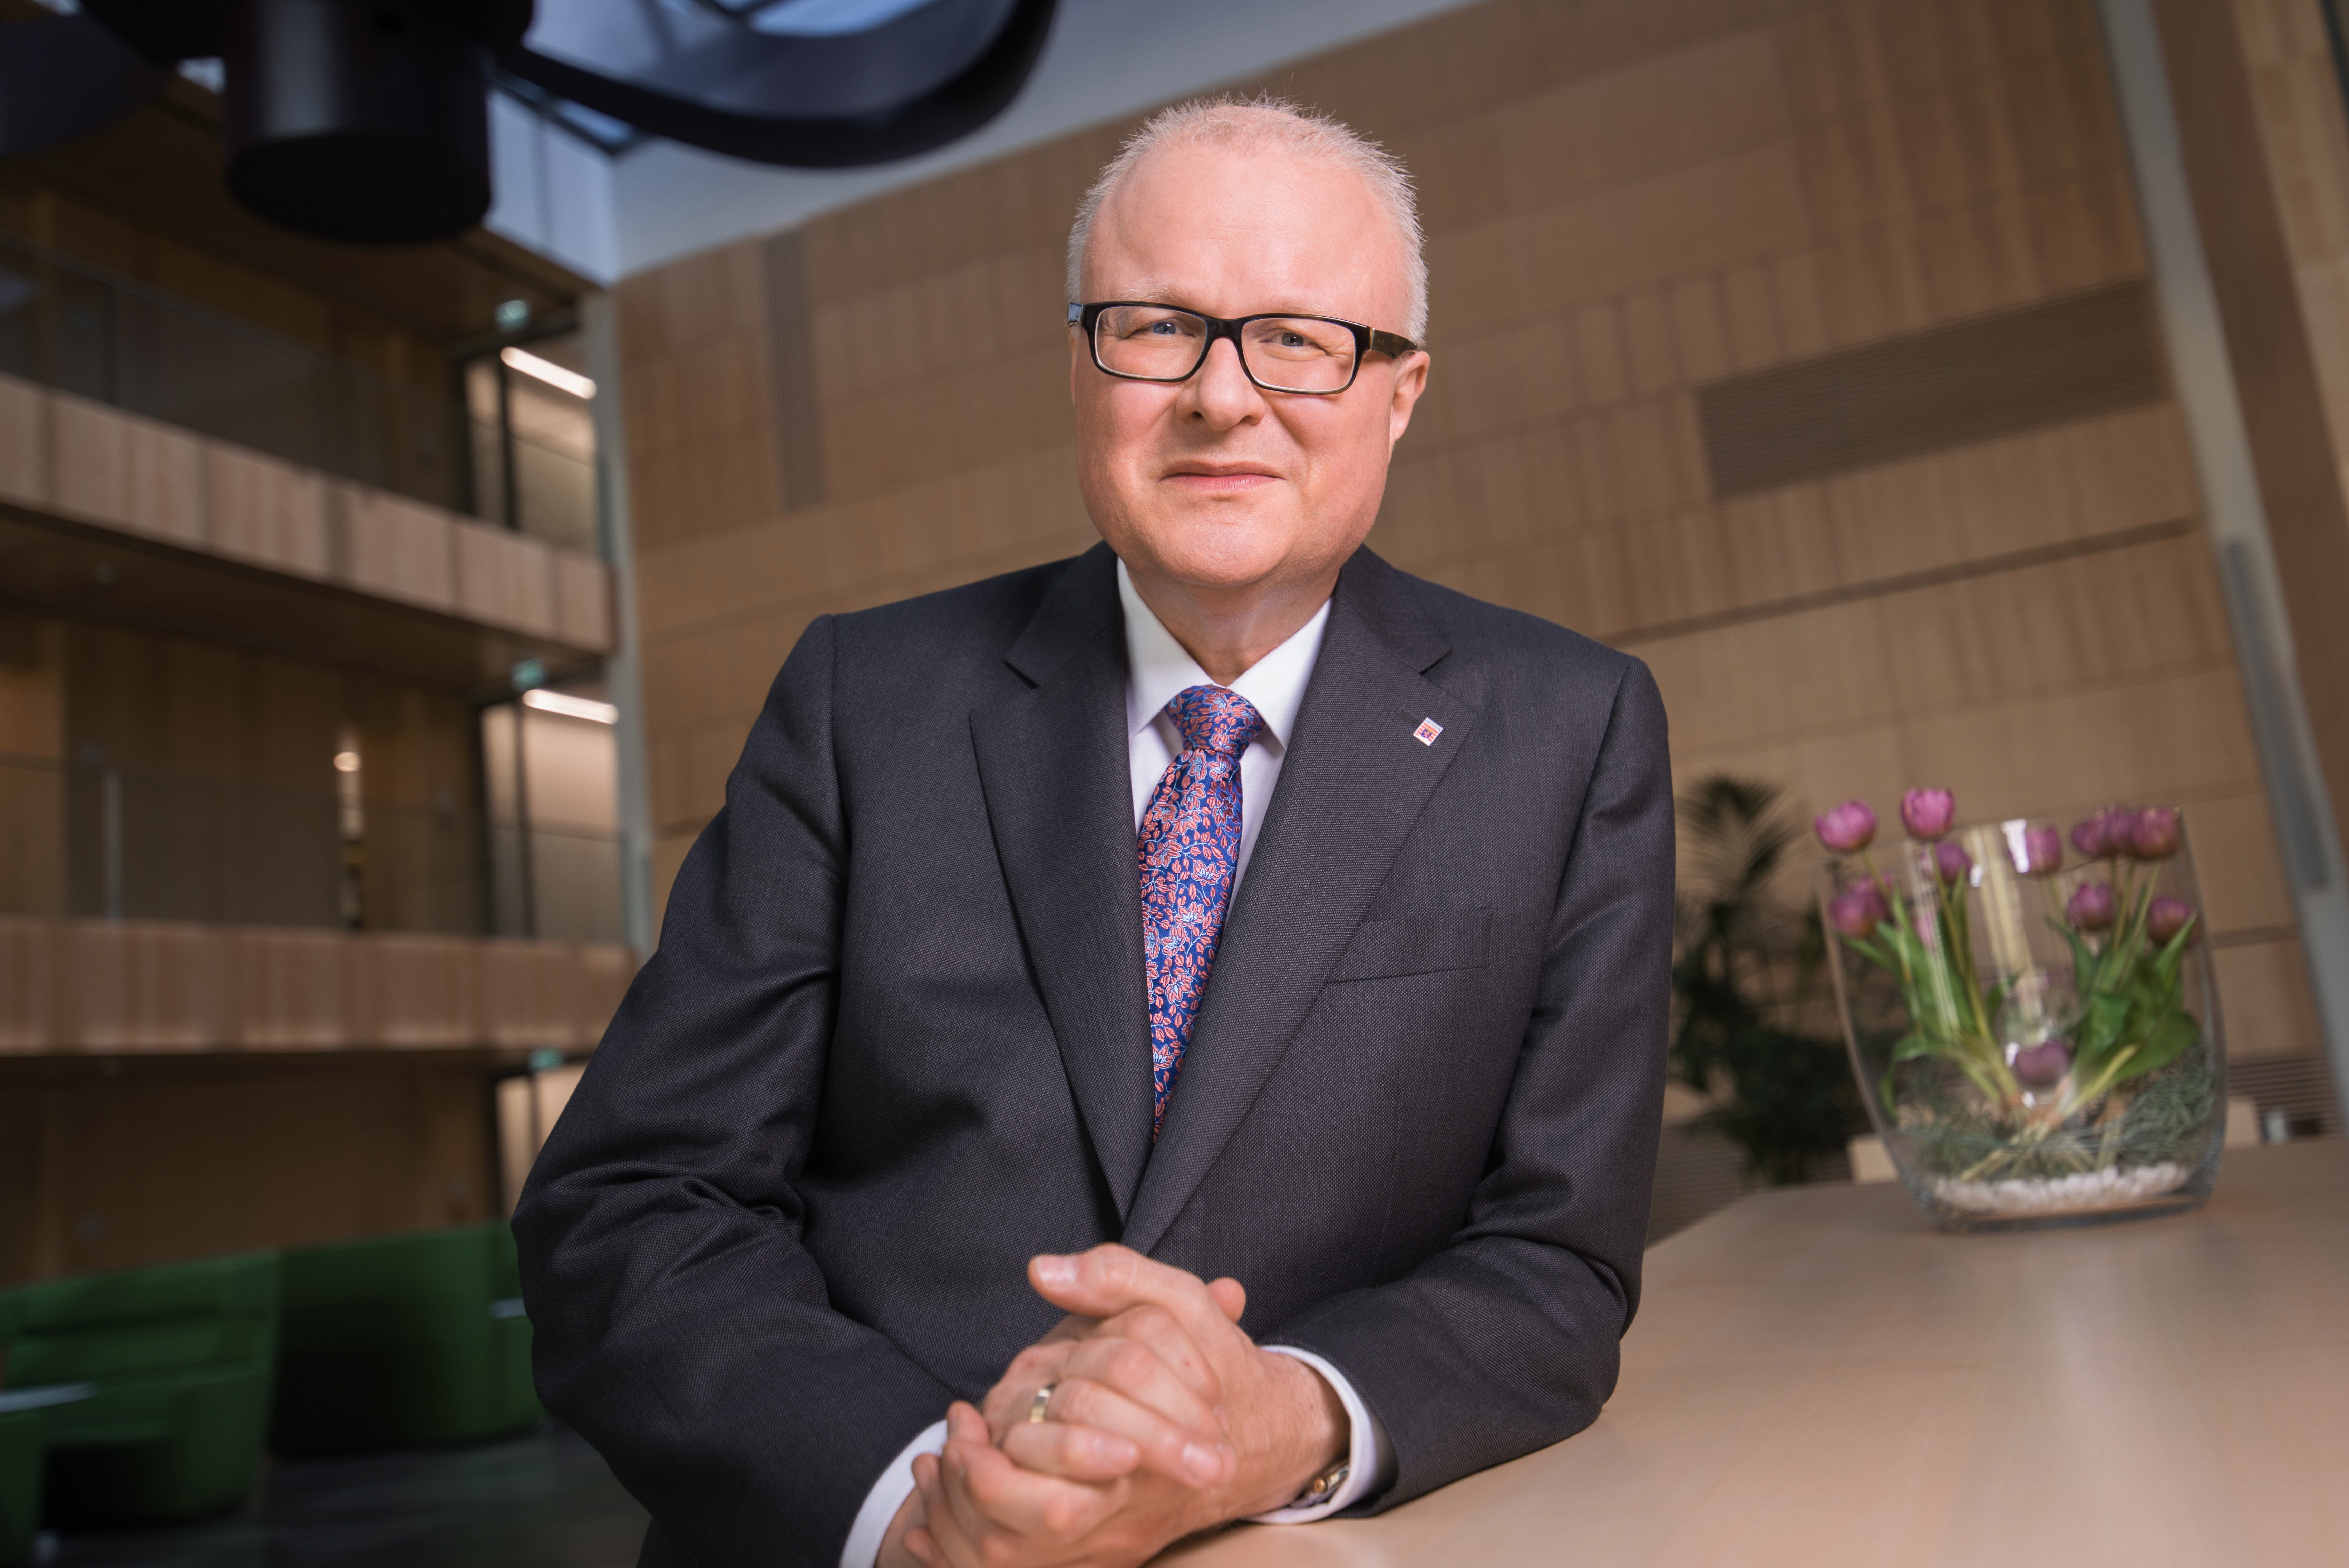 Thomas Schaefer, finance minister of Hesse in Germany, took his own life on Saturday